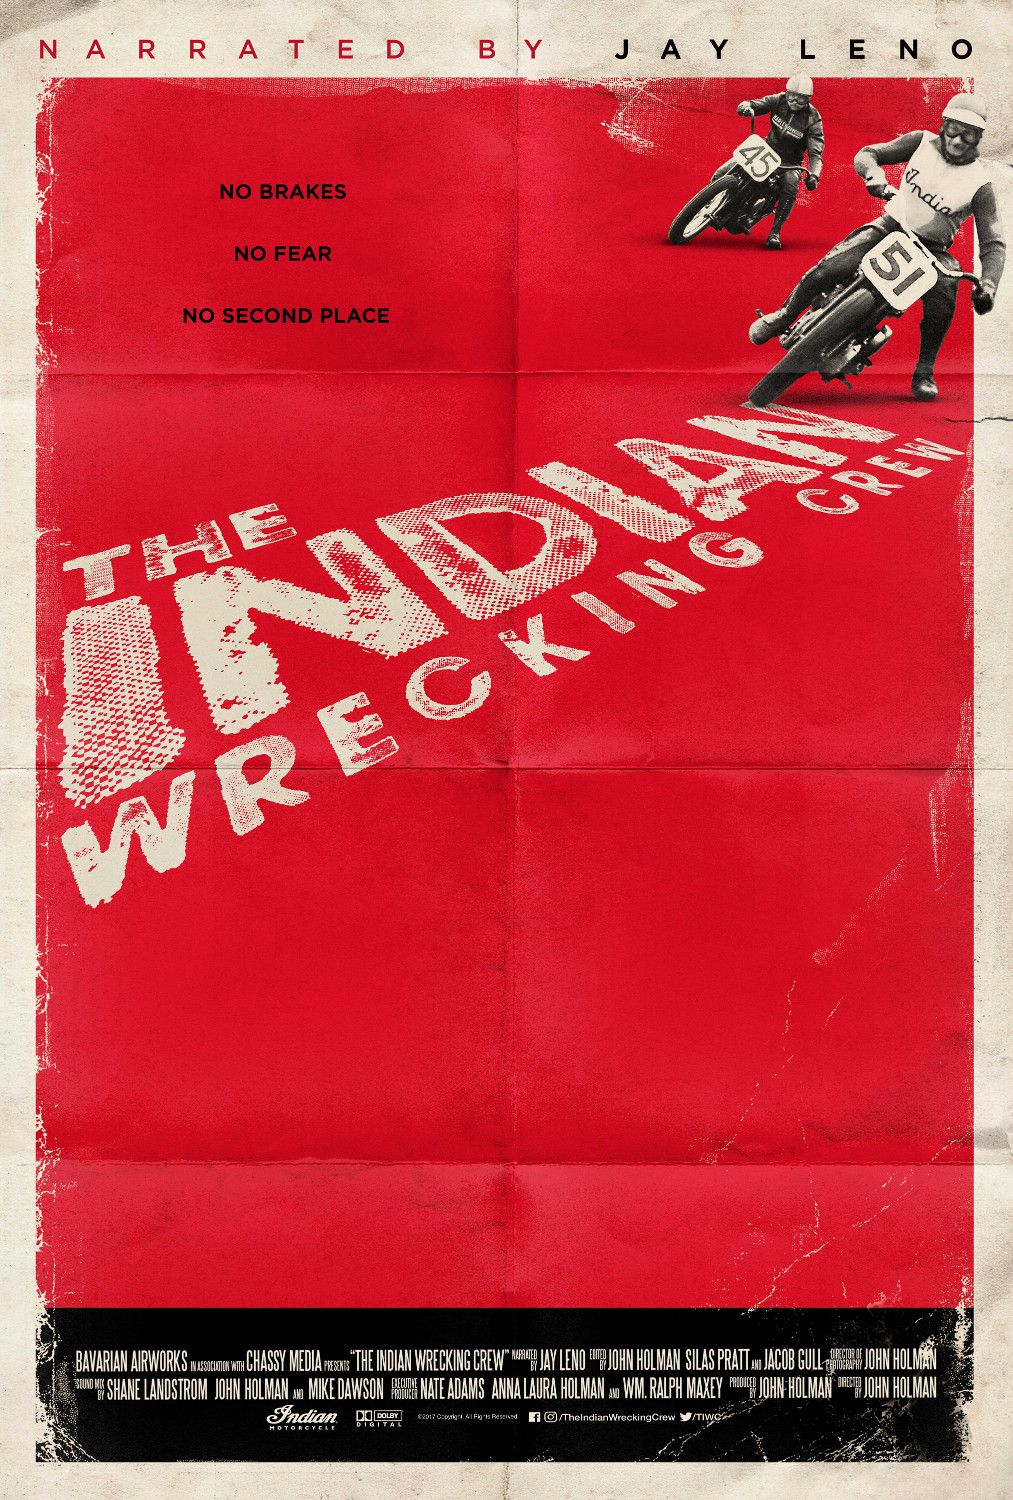 The Indian Wrecking Crew - No brakes, No Fear, No Second Place - Moto Racing film poster